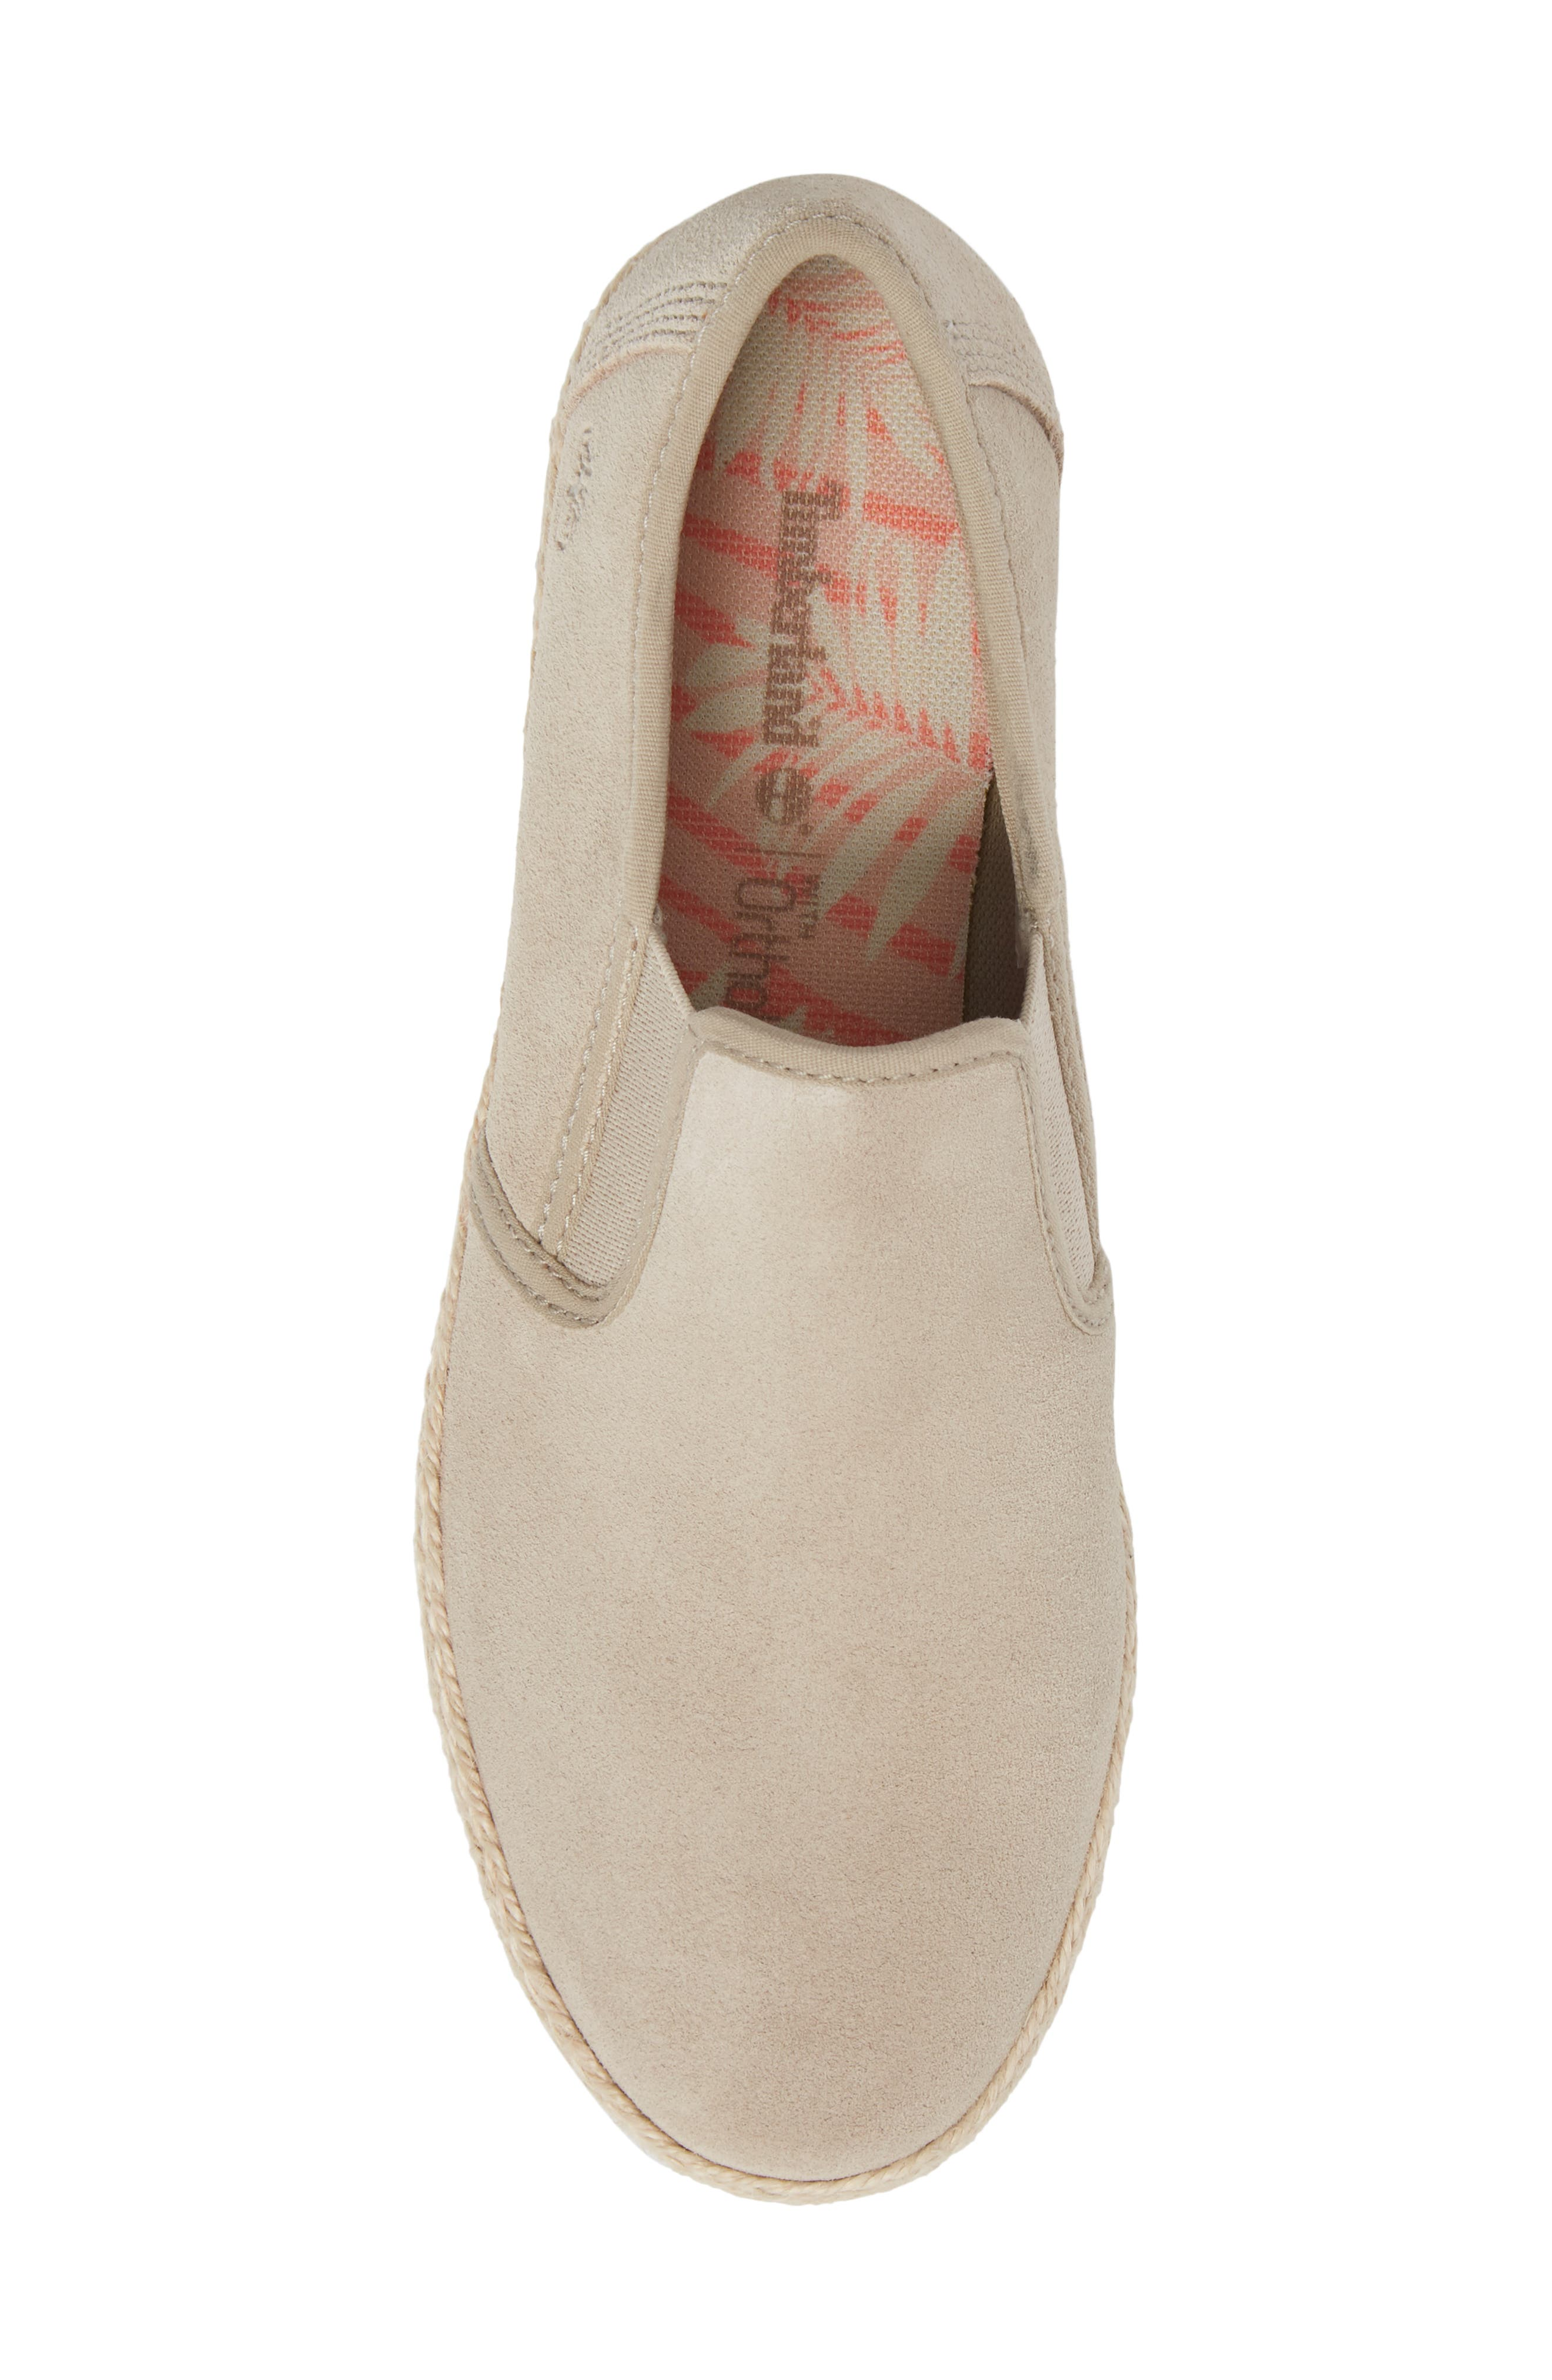 Eivissa Sea Slip-On Sneaker,                             Alternate thumbnail 5, color,                             LIGHT BEIGE LEATHER